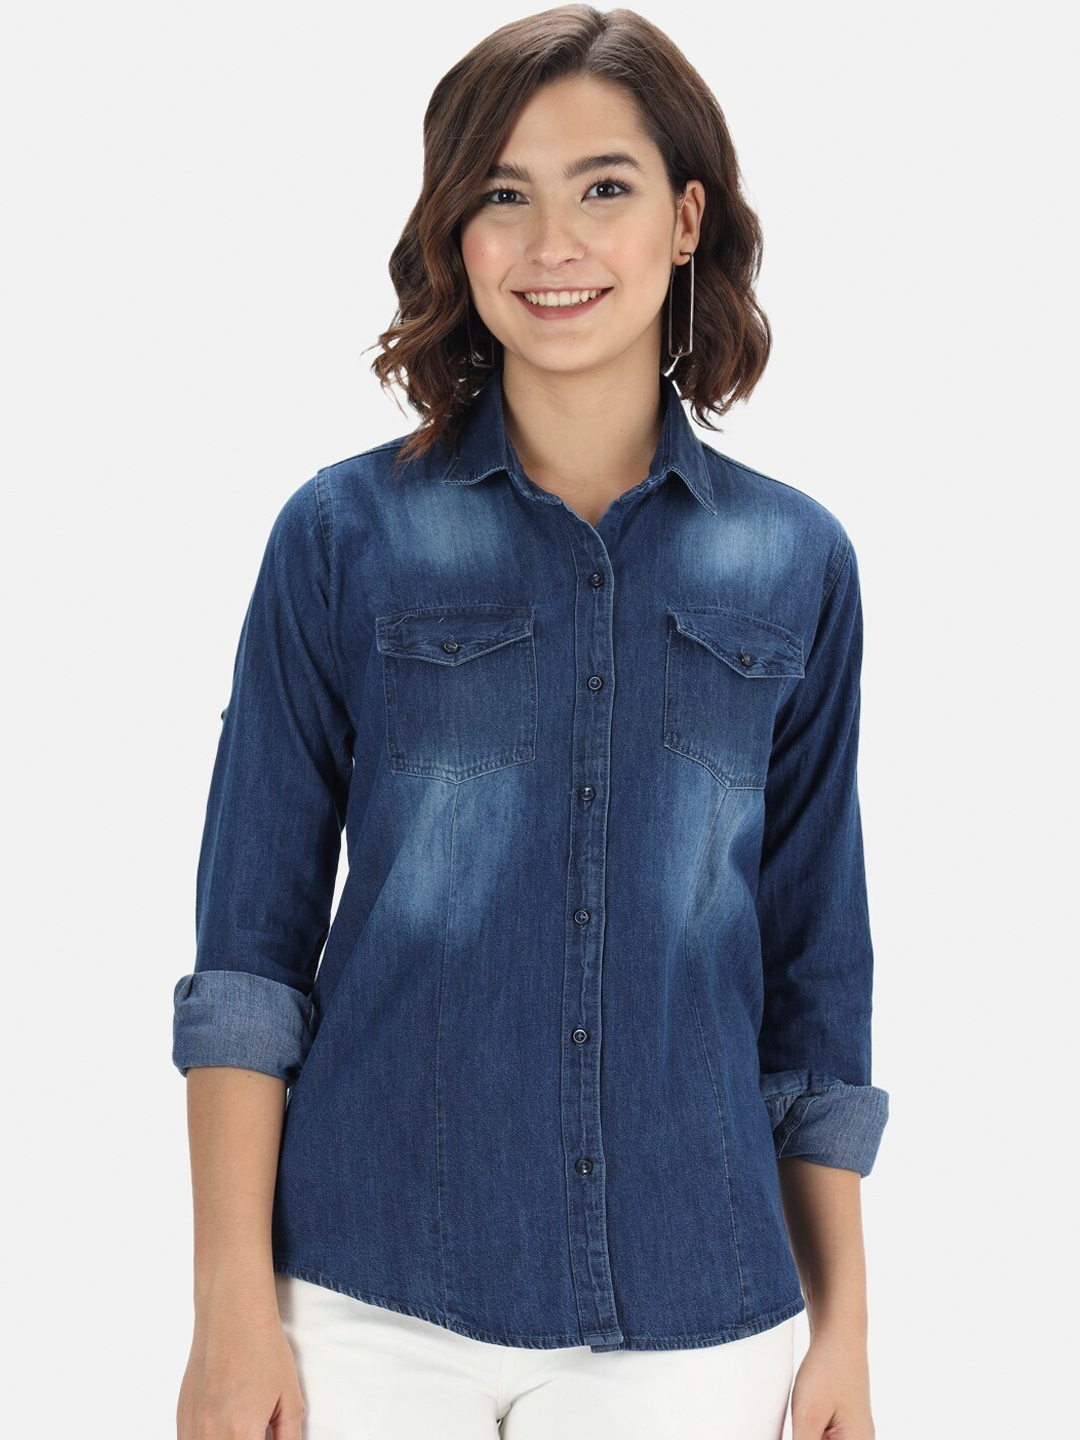 The Dry State Women Blue Denim Faded Casual Shirt